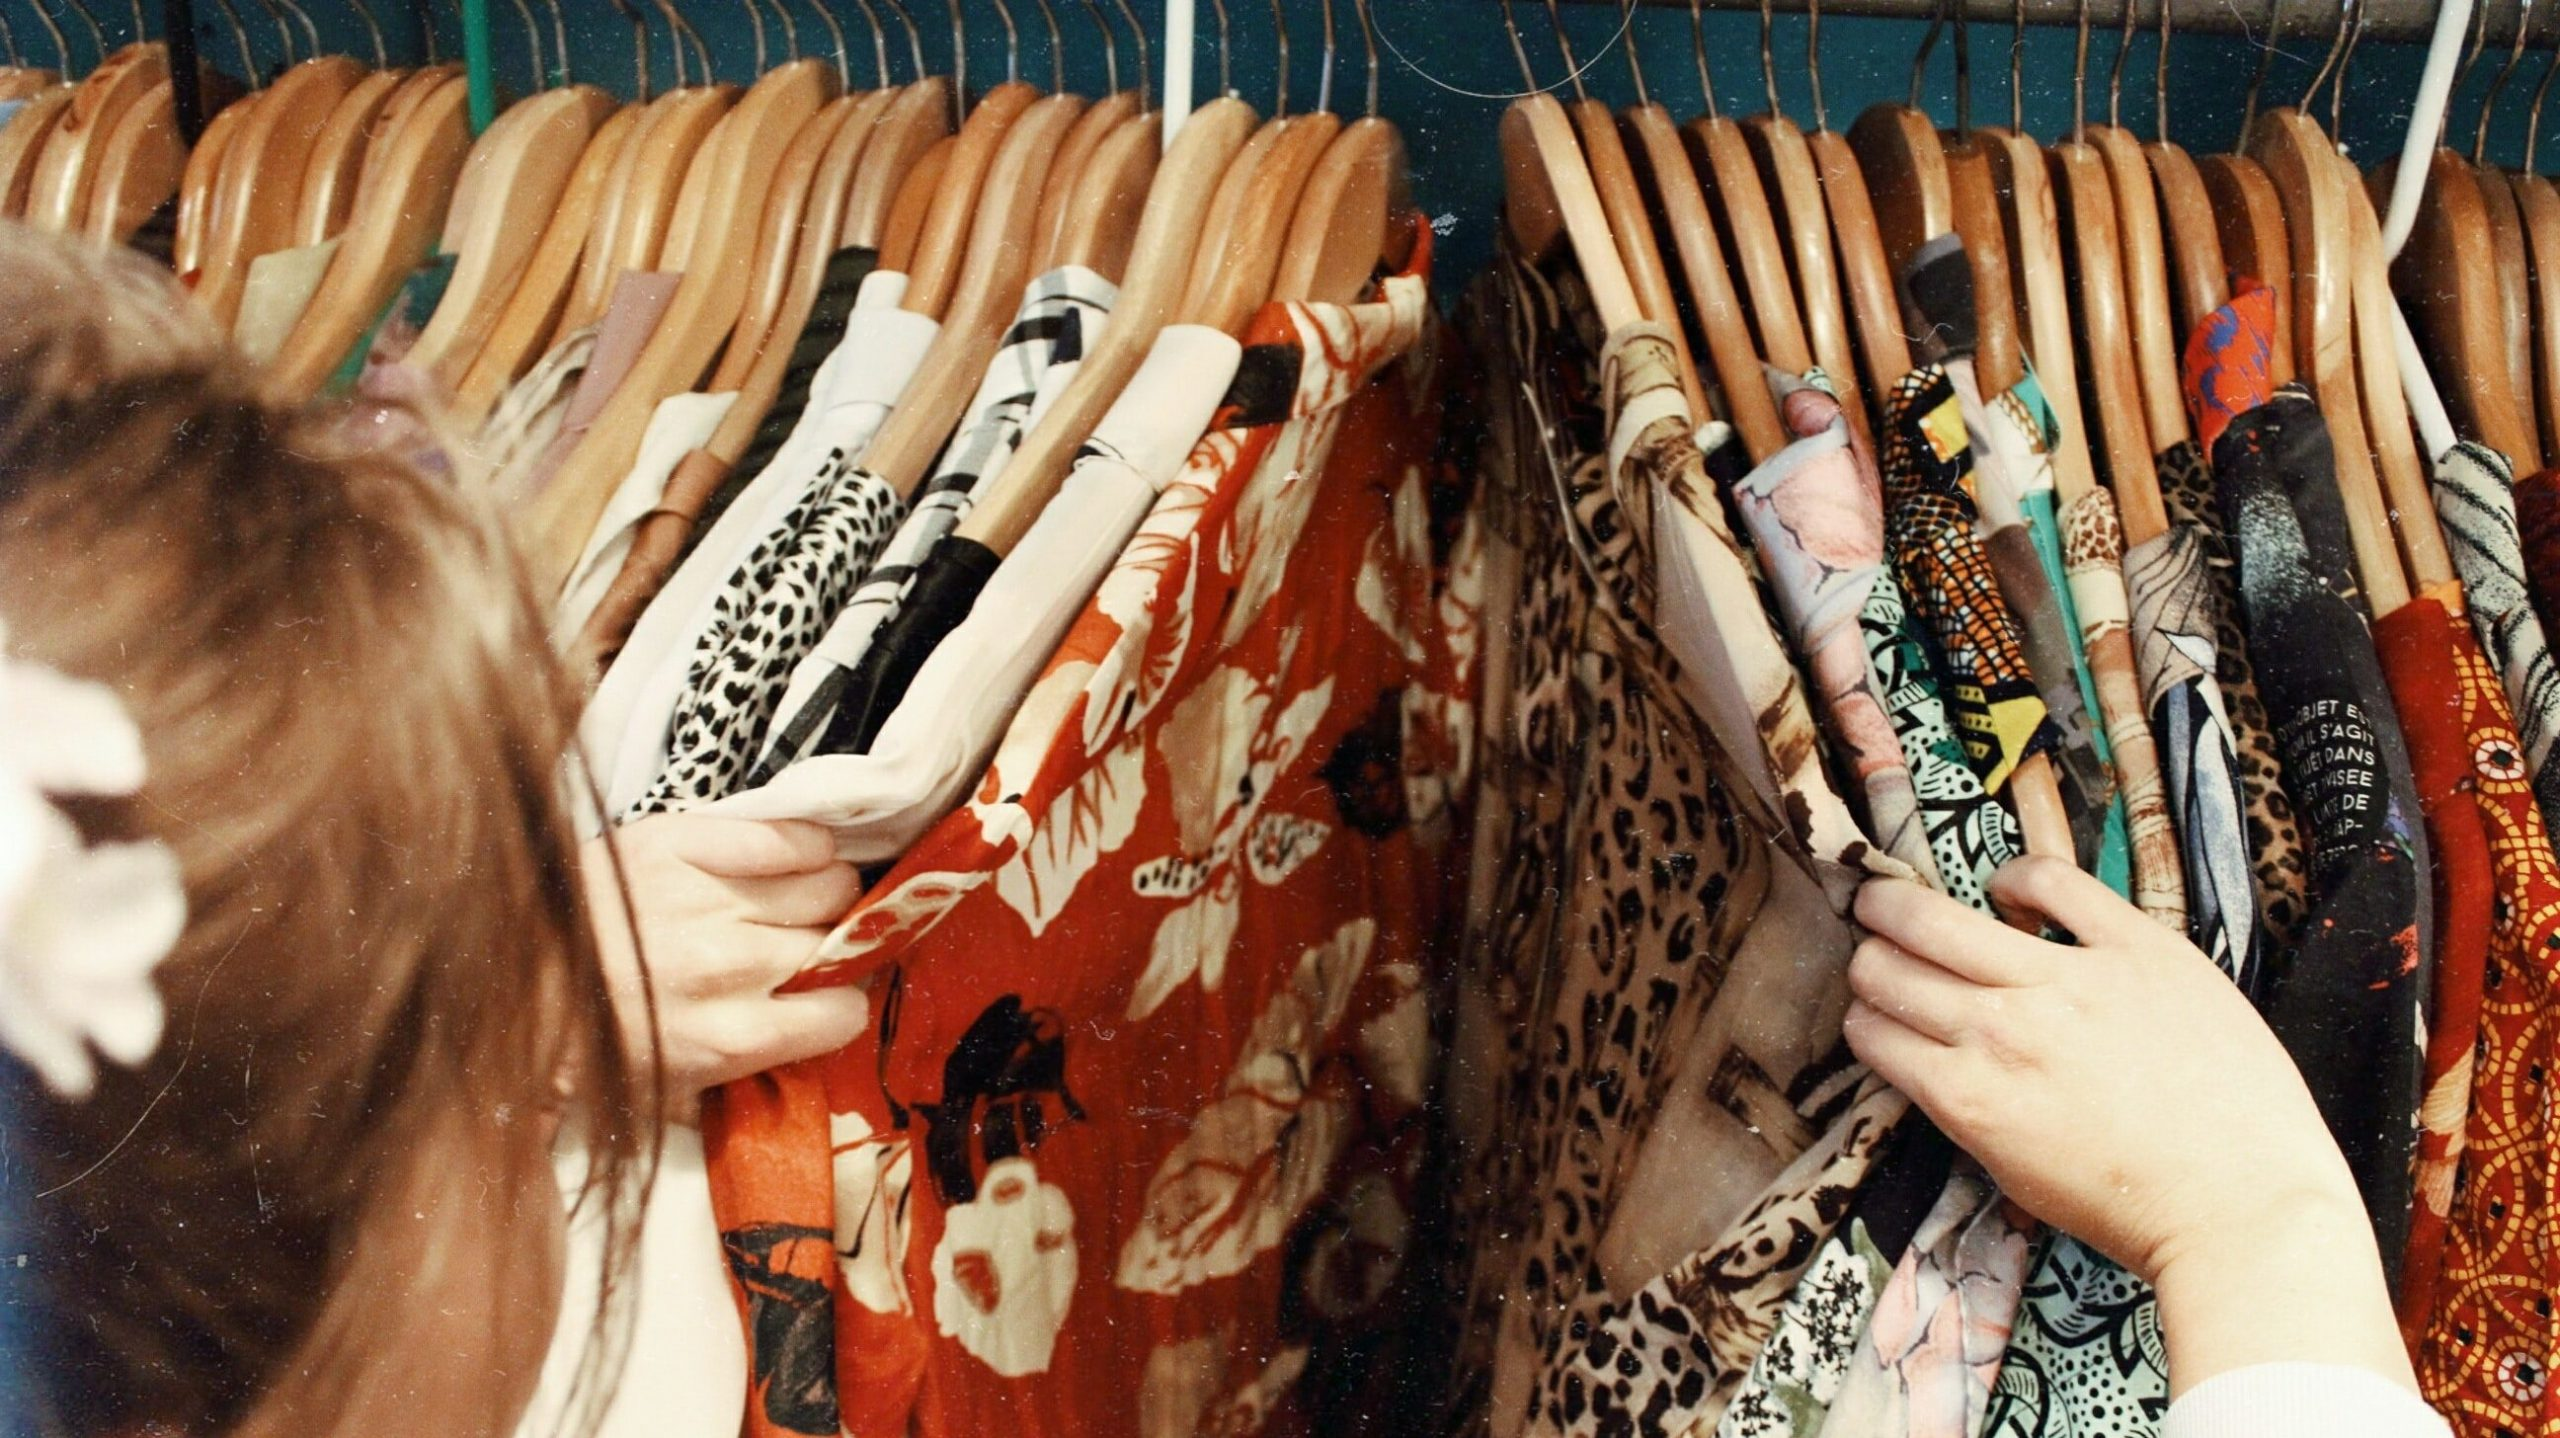 Buy second hand clothes to reduce your carbon emissions